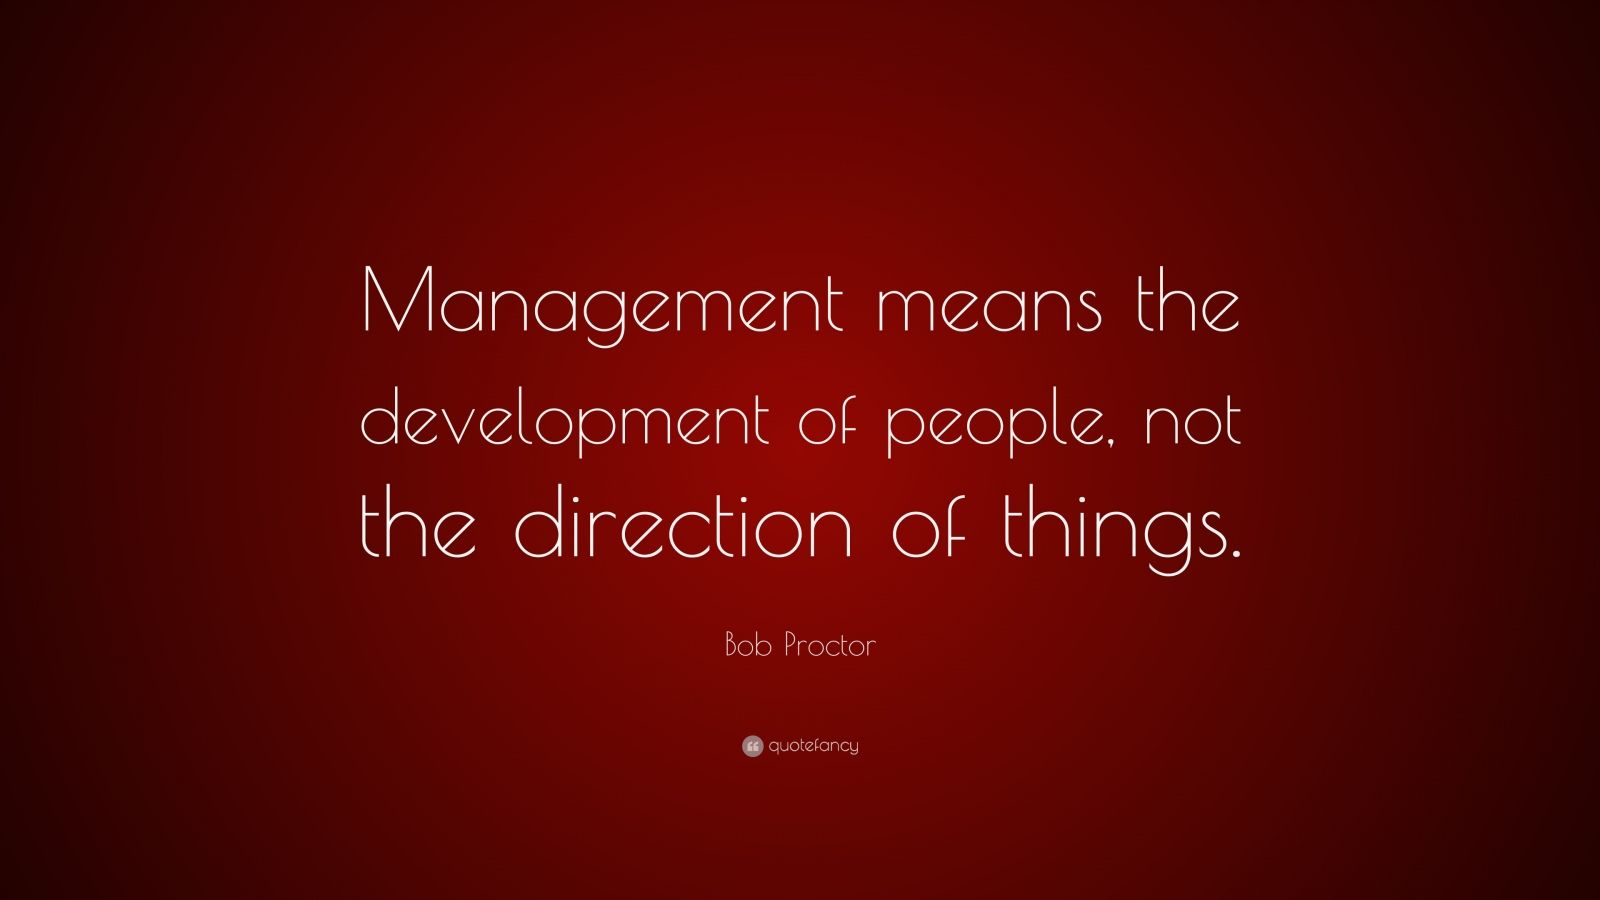 """Bob Proctor Quote: """"Management means the development of people, not the direction of things."""""""